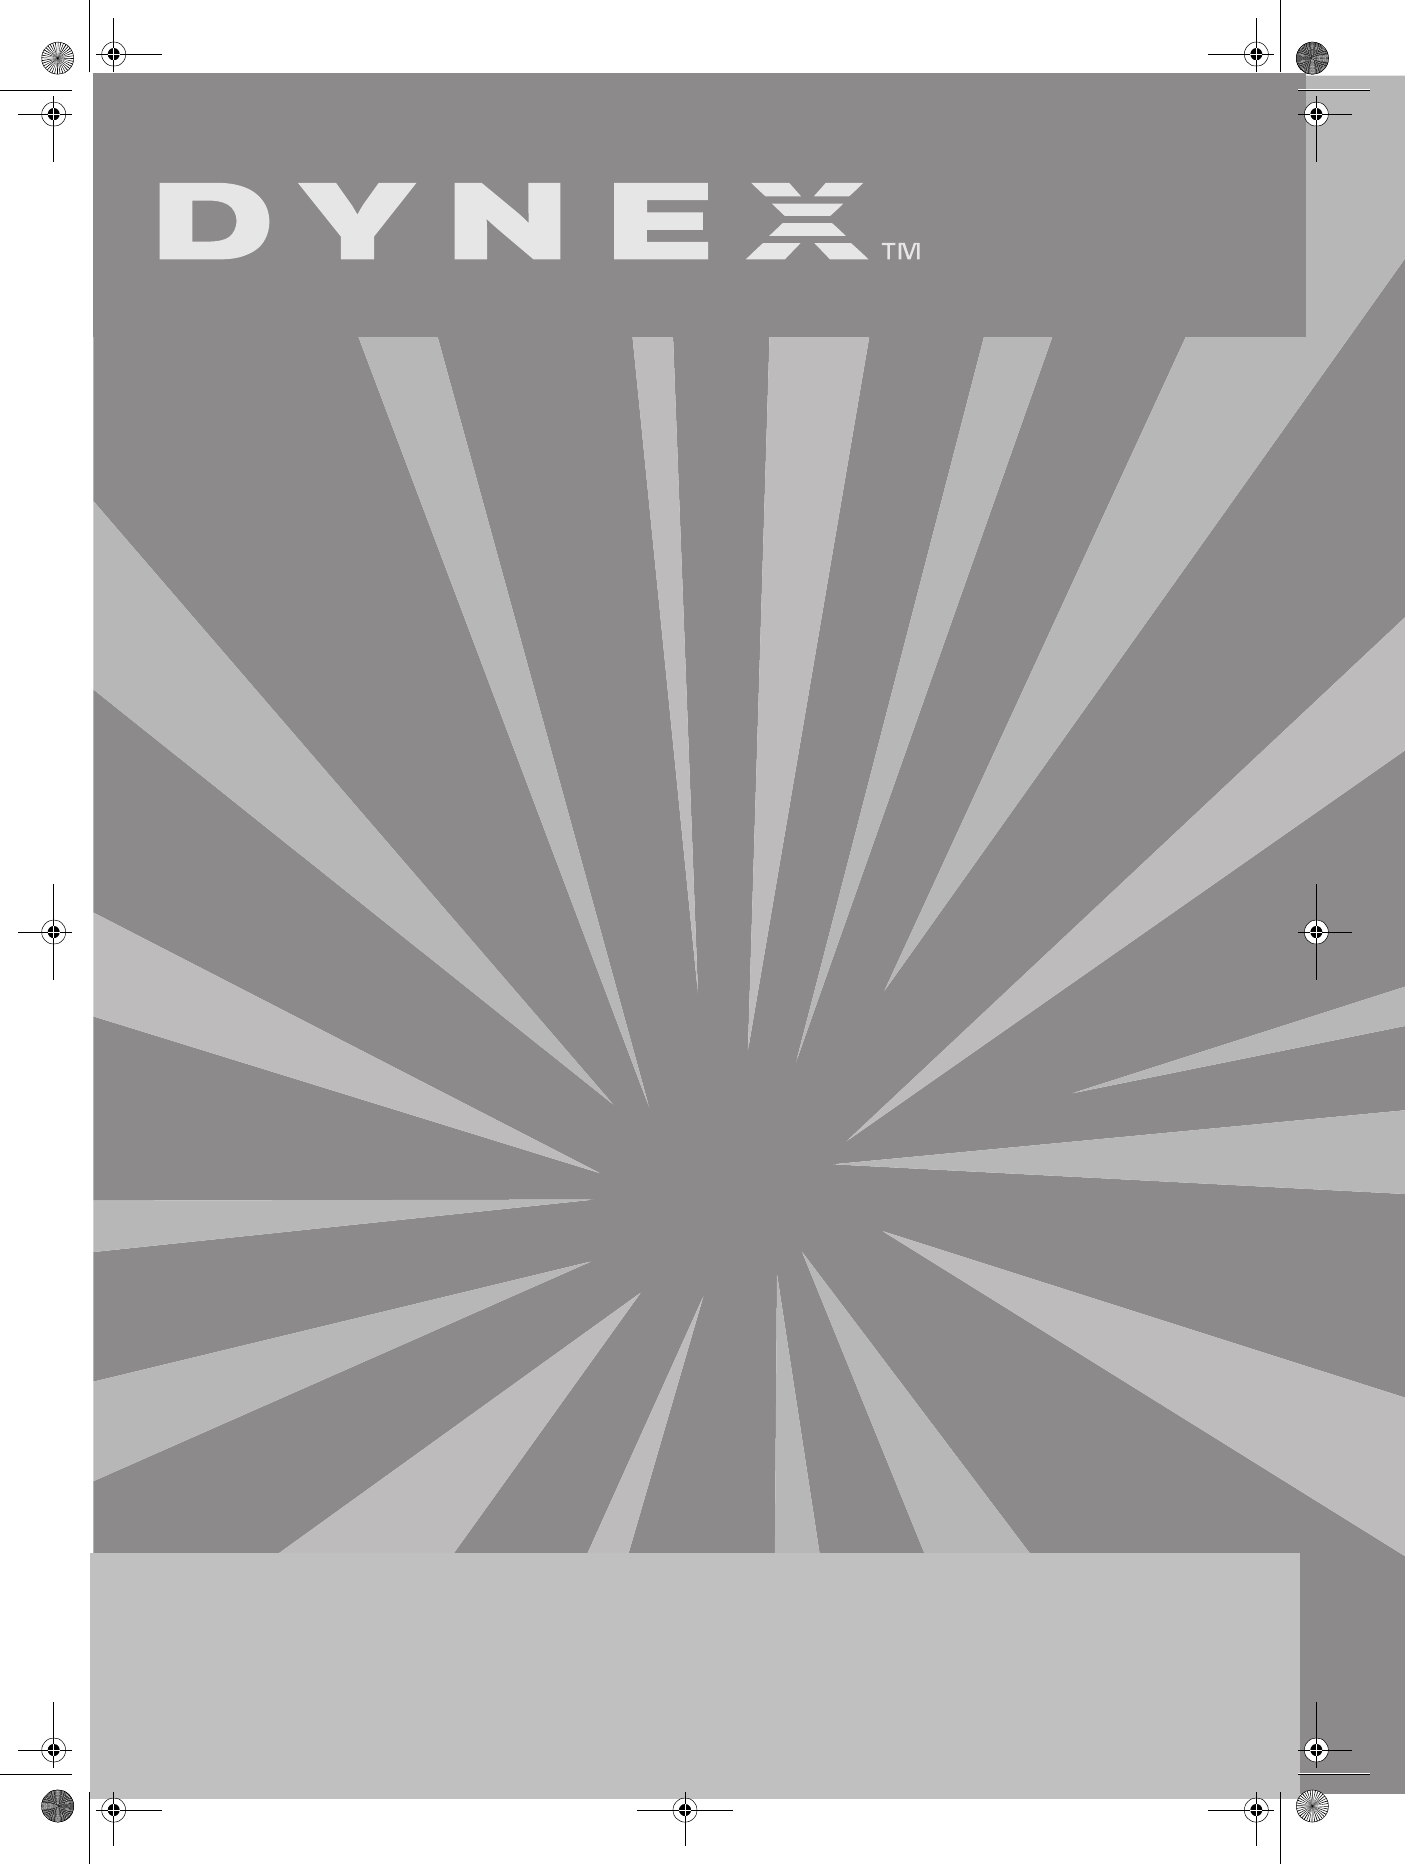 DYNEX ENHANCED G DESKTOP CARD DRIVERS (2019)